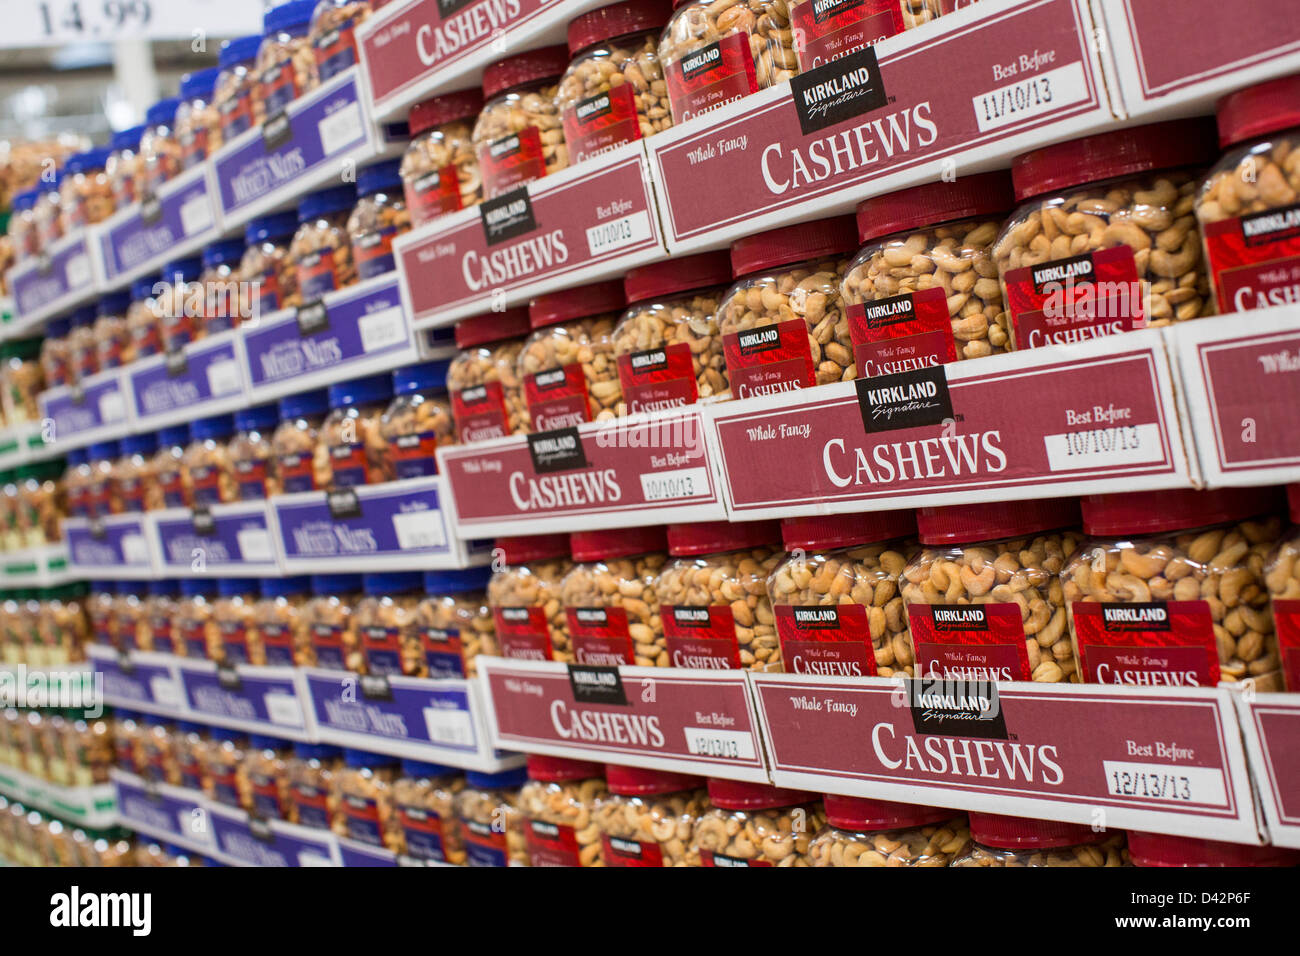 Cashew nuts on display at a costco wholesale warehouse club stock cashew nuts on display at a costco wholesale warehouse club thecheapjerseys Images